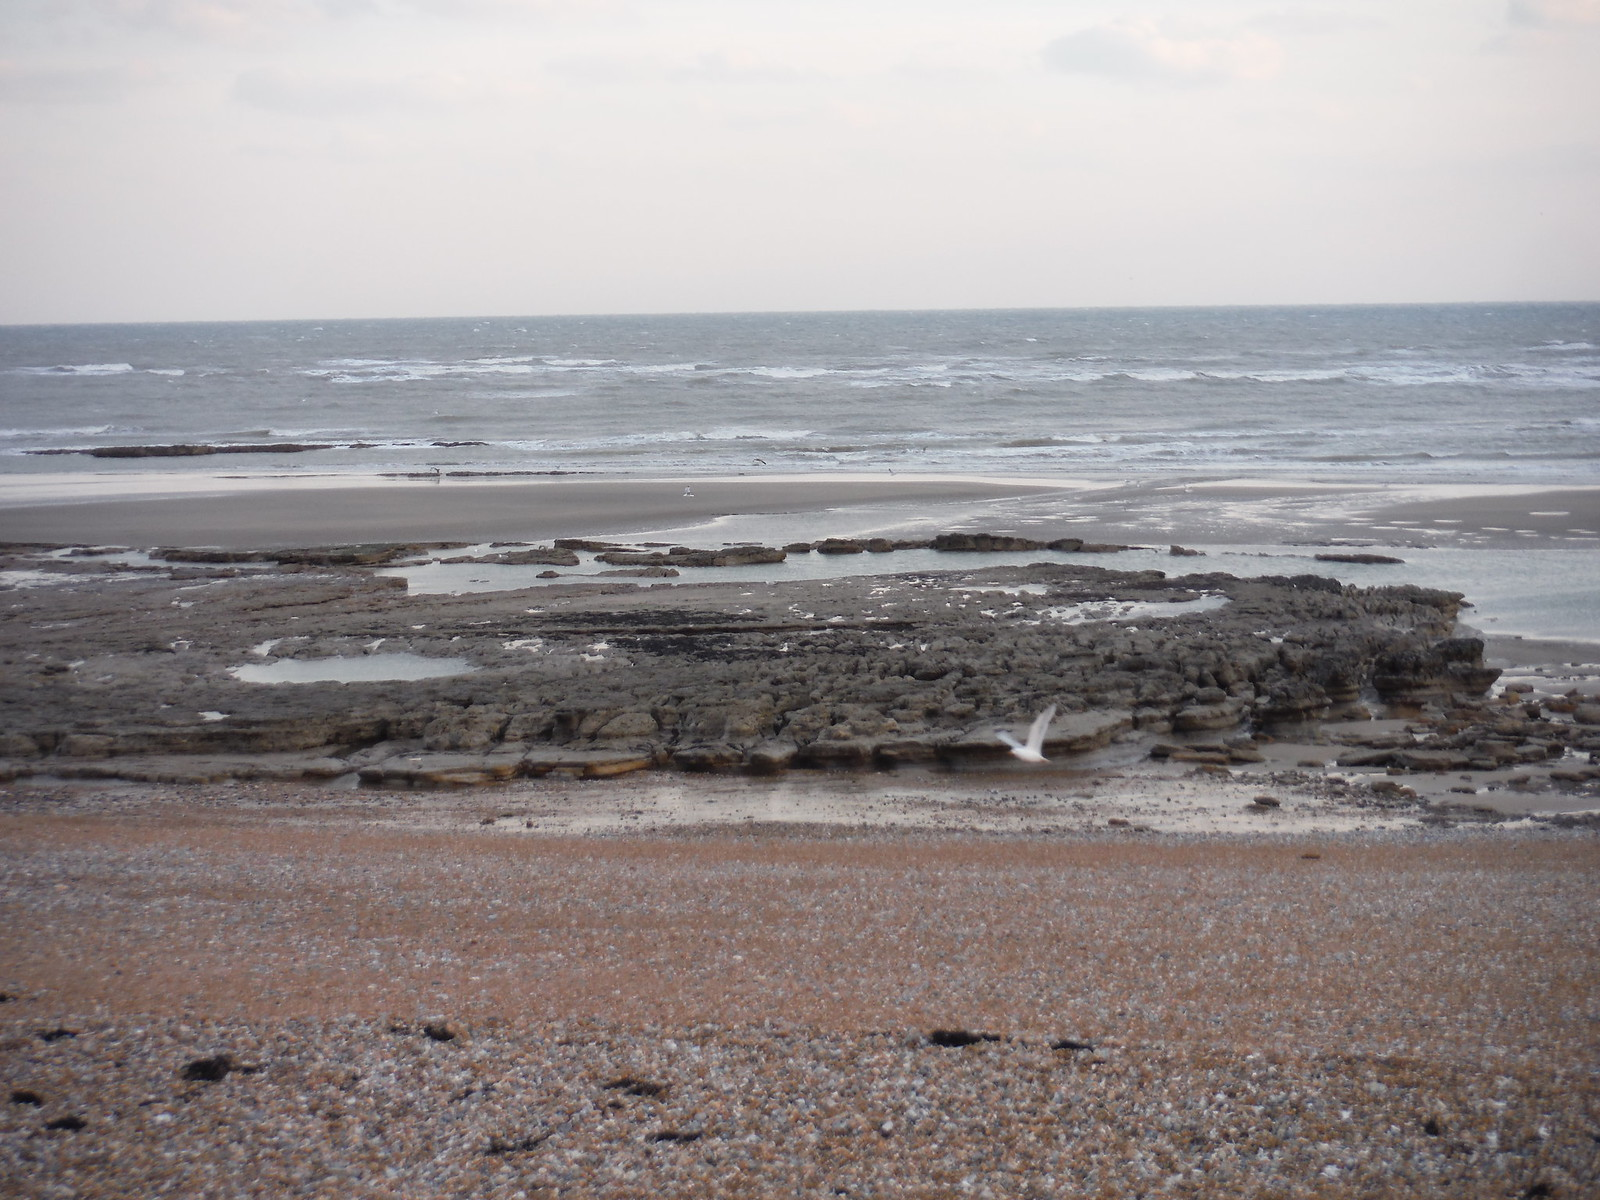 Rocks on the beach at low tide SWC Walk 66 - Eastbourne to Hastings via Bexhill